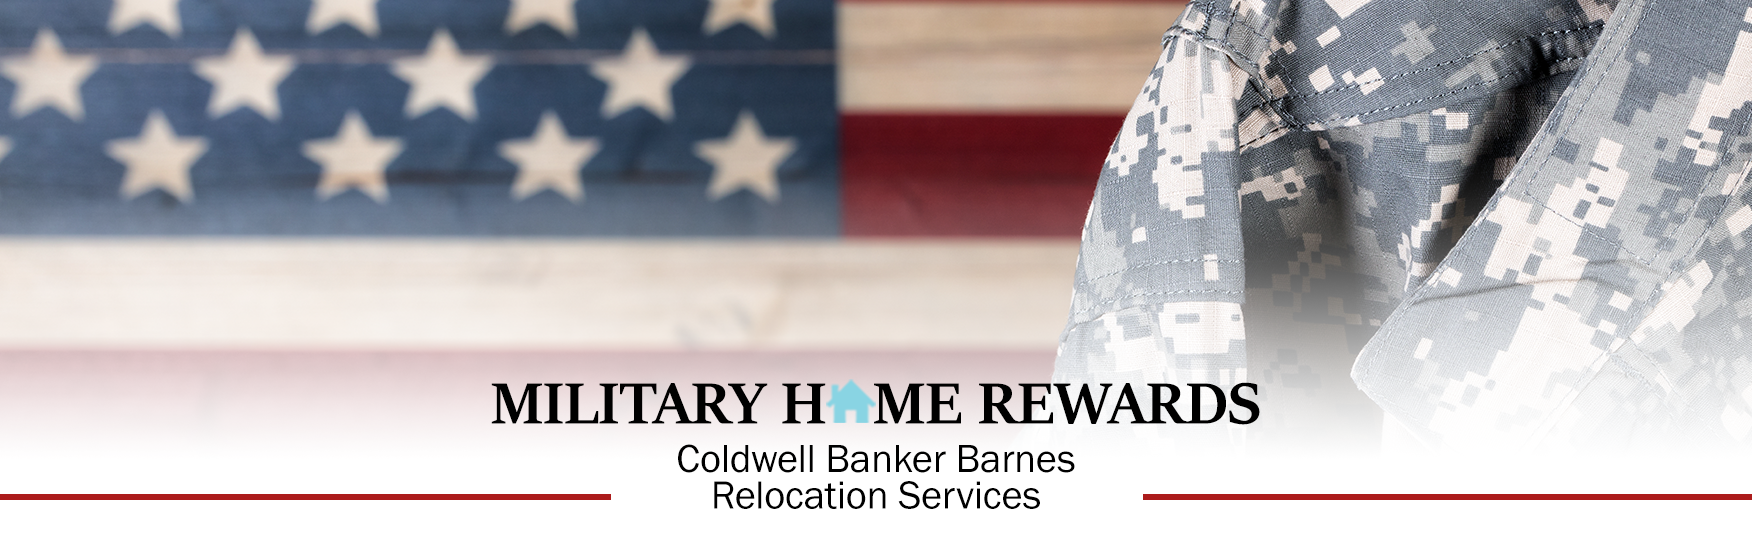 Military Home Rewards